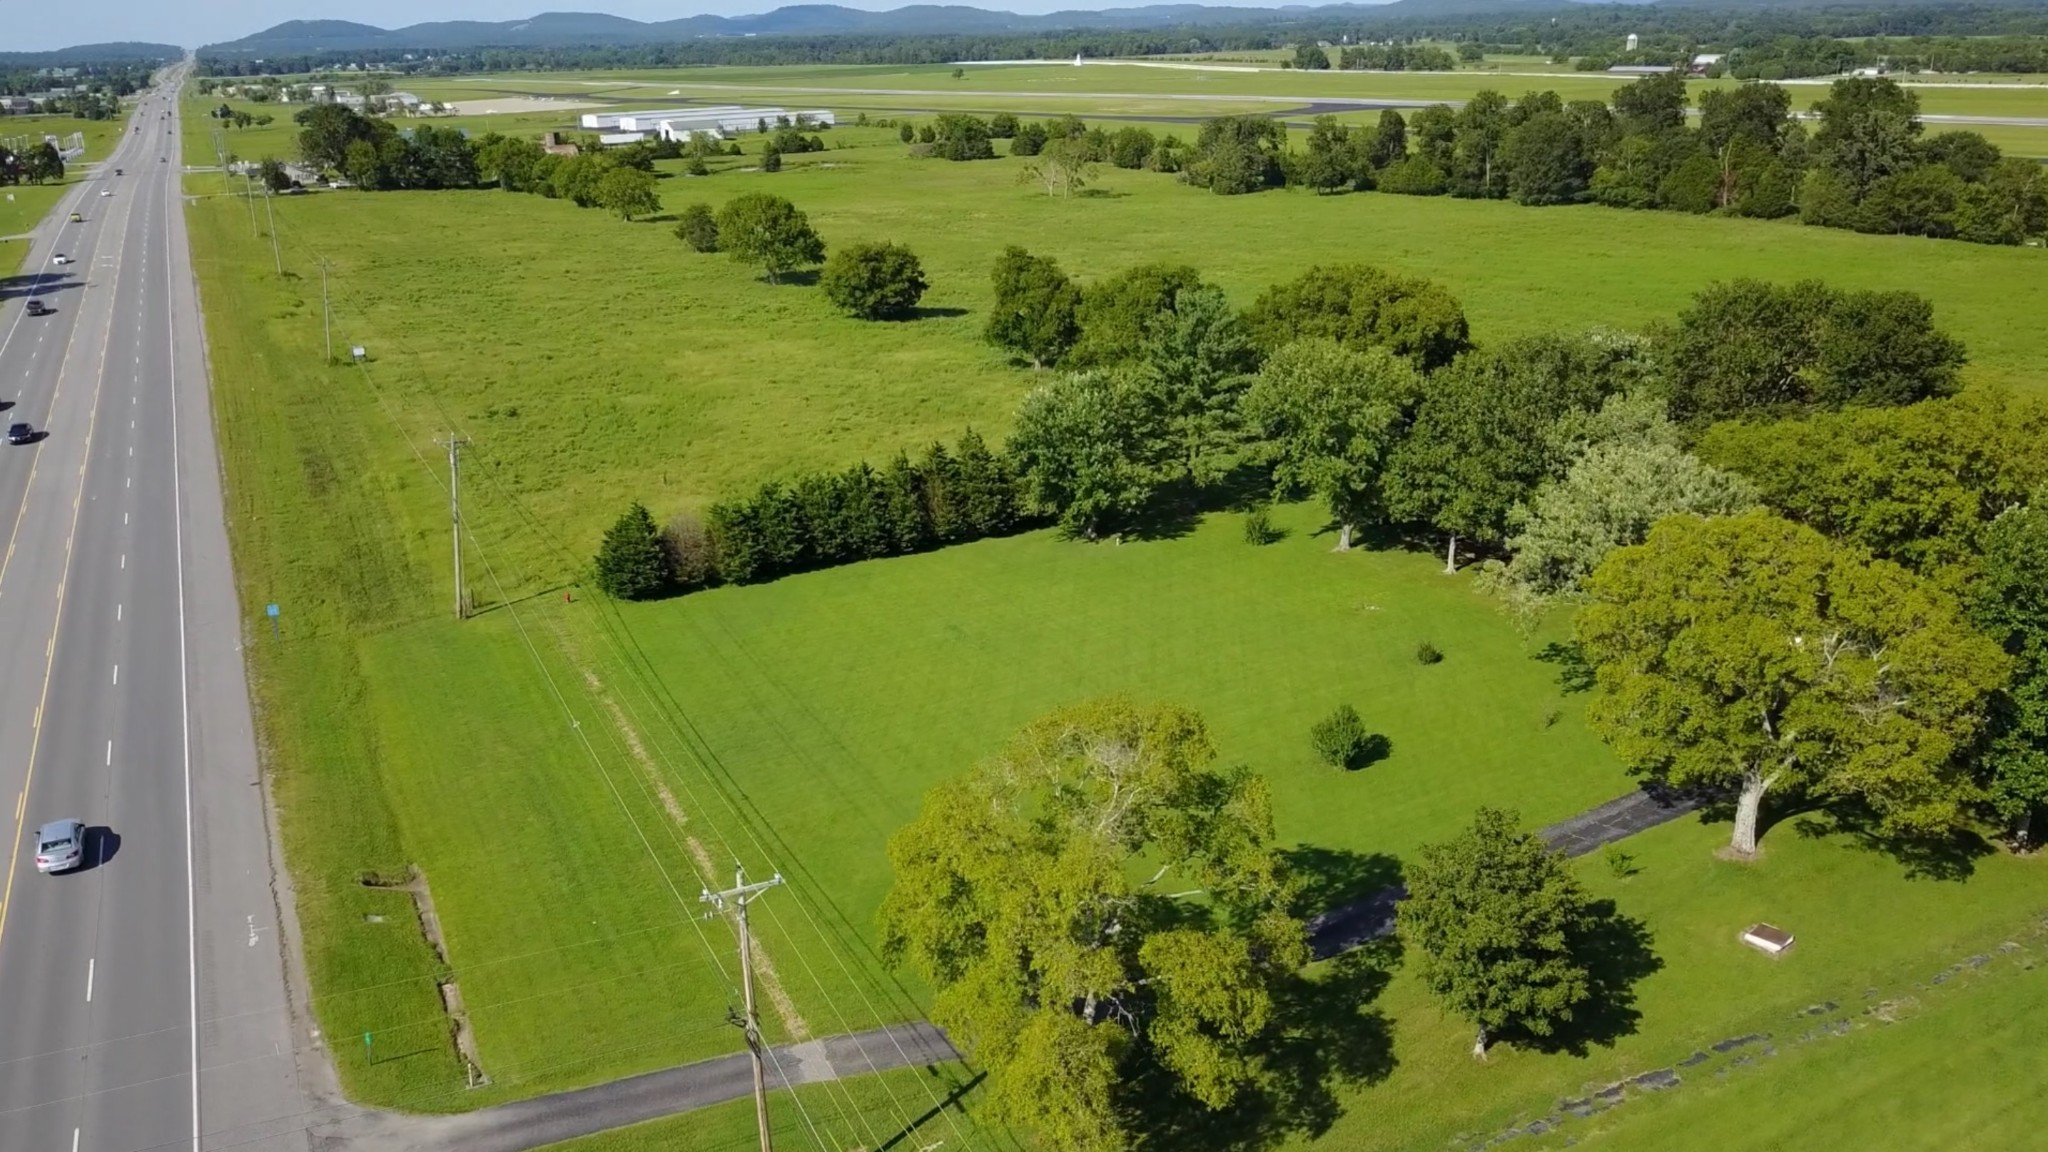 2764 2764 N Property Photo - Shelbyville, TN real estate listing